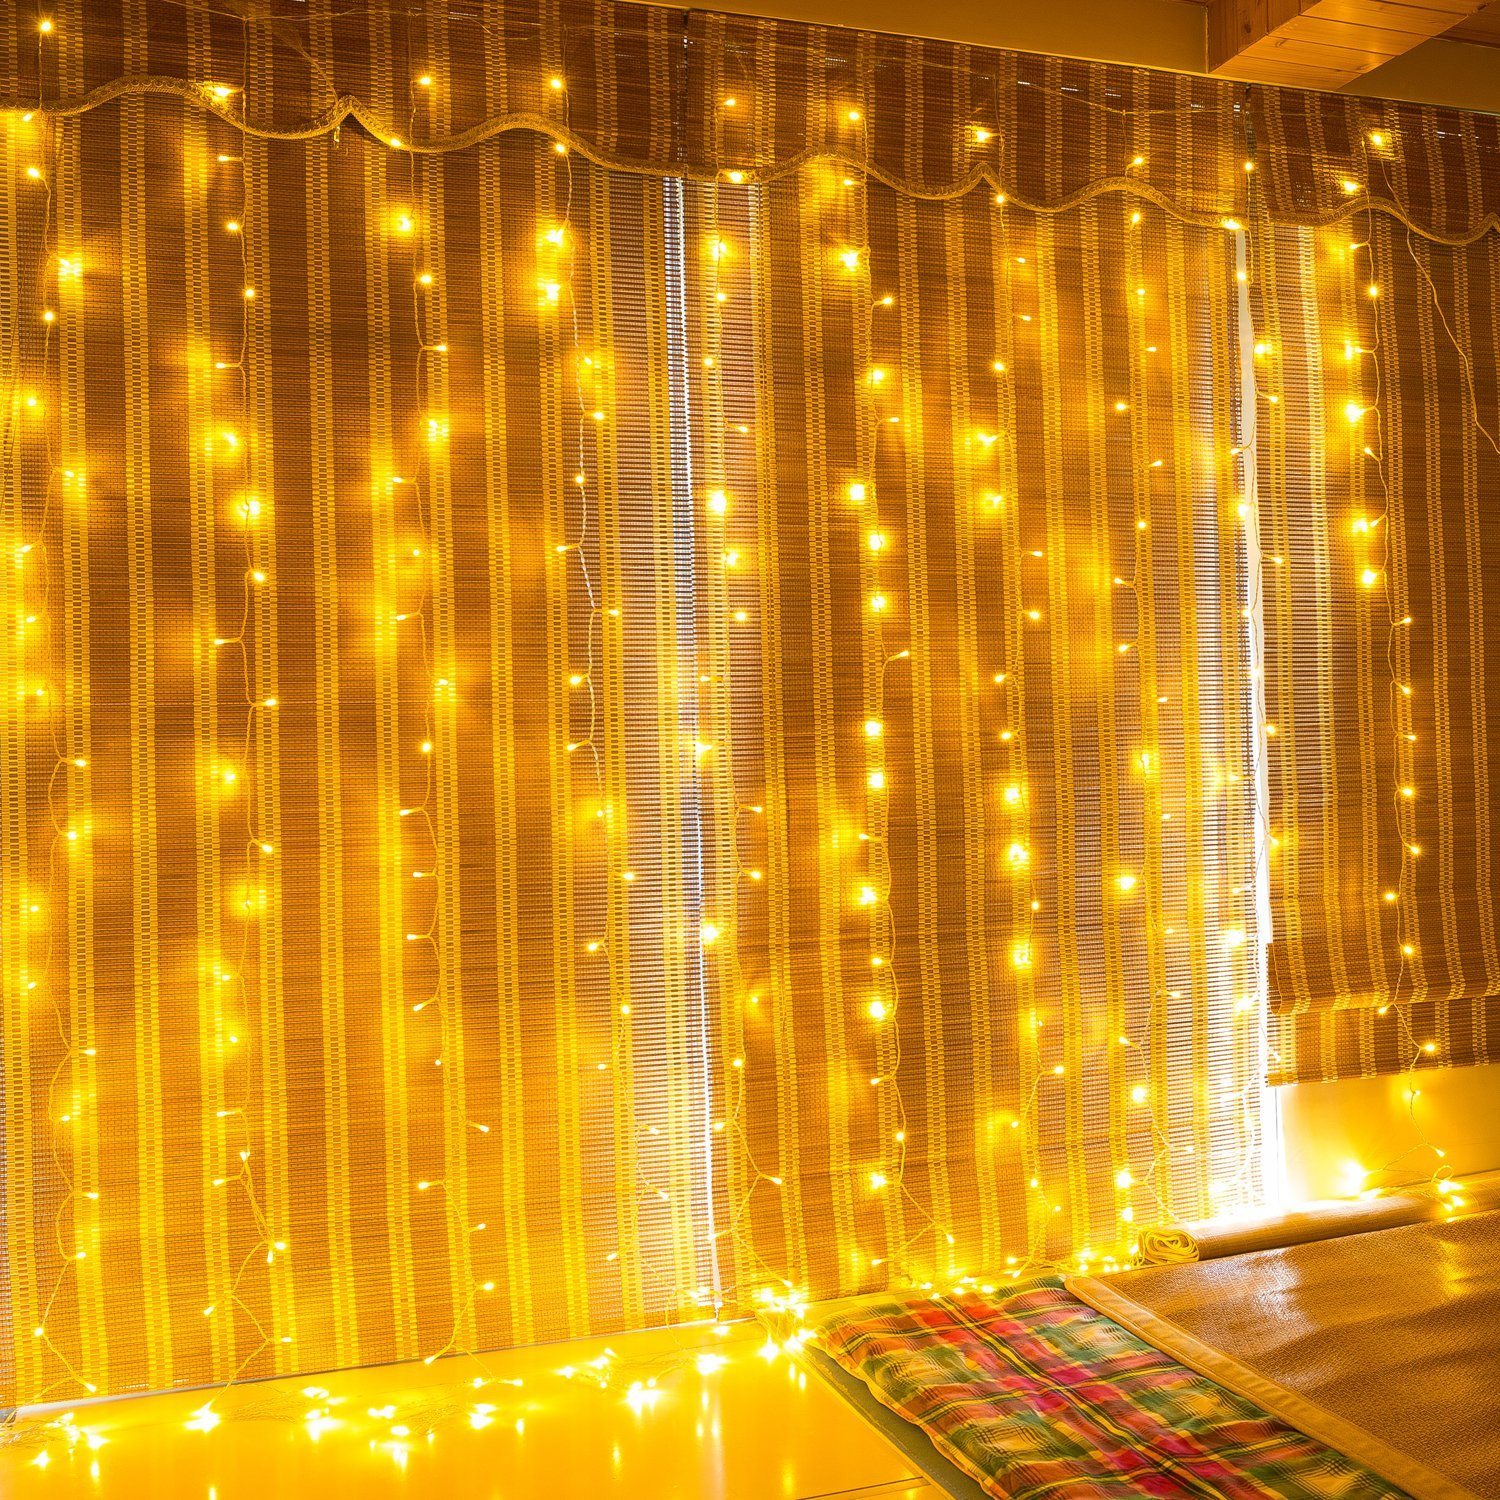 M-Better LED String Lights Curtain Lights 300LEDS 8 Modes Indoor Outdoor Window Curtains String Lights,Warm White Garden Lights for Wedding,Valentine's Day, Christmas, Party, Bedroom&Garden